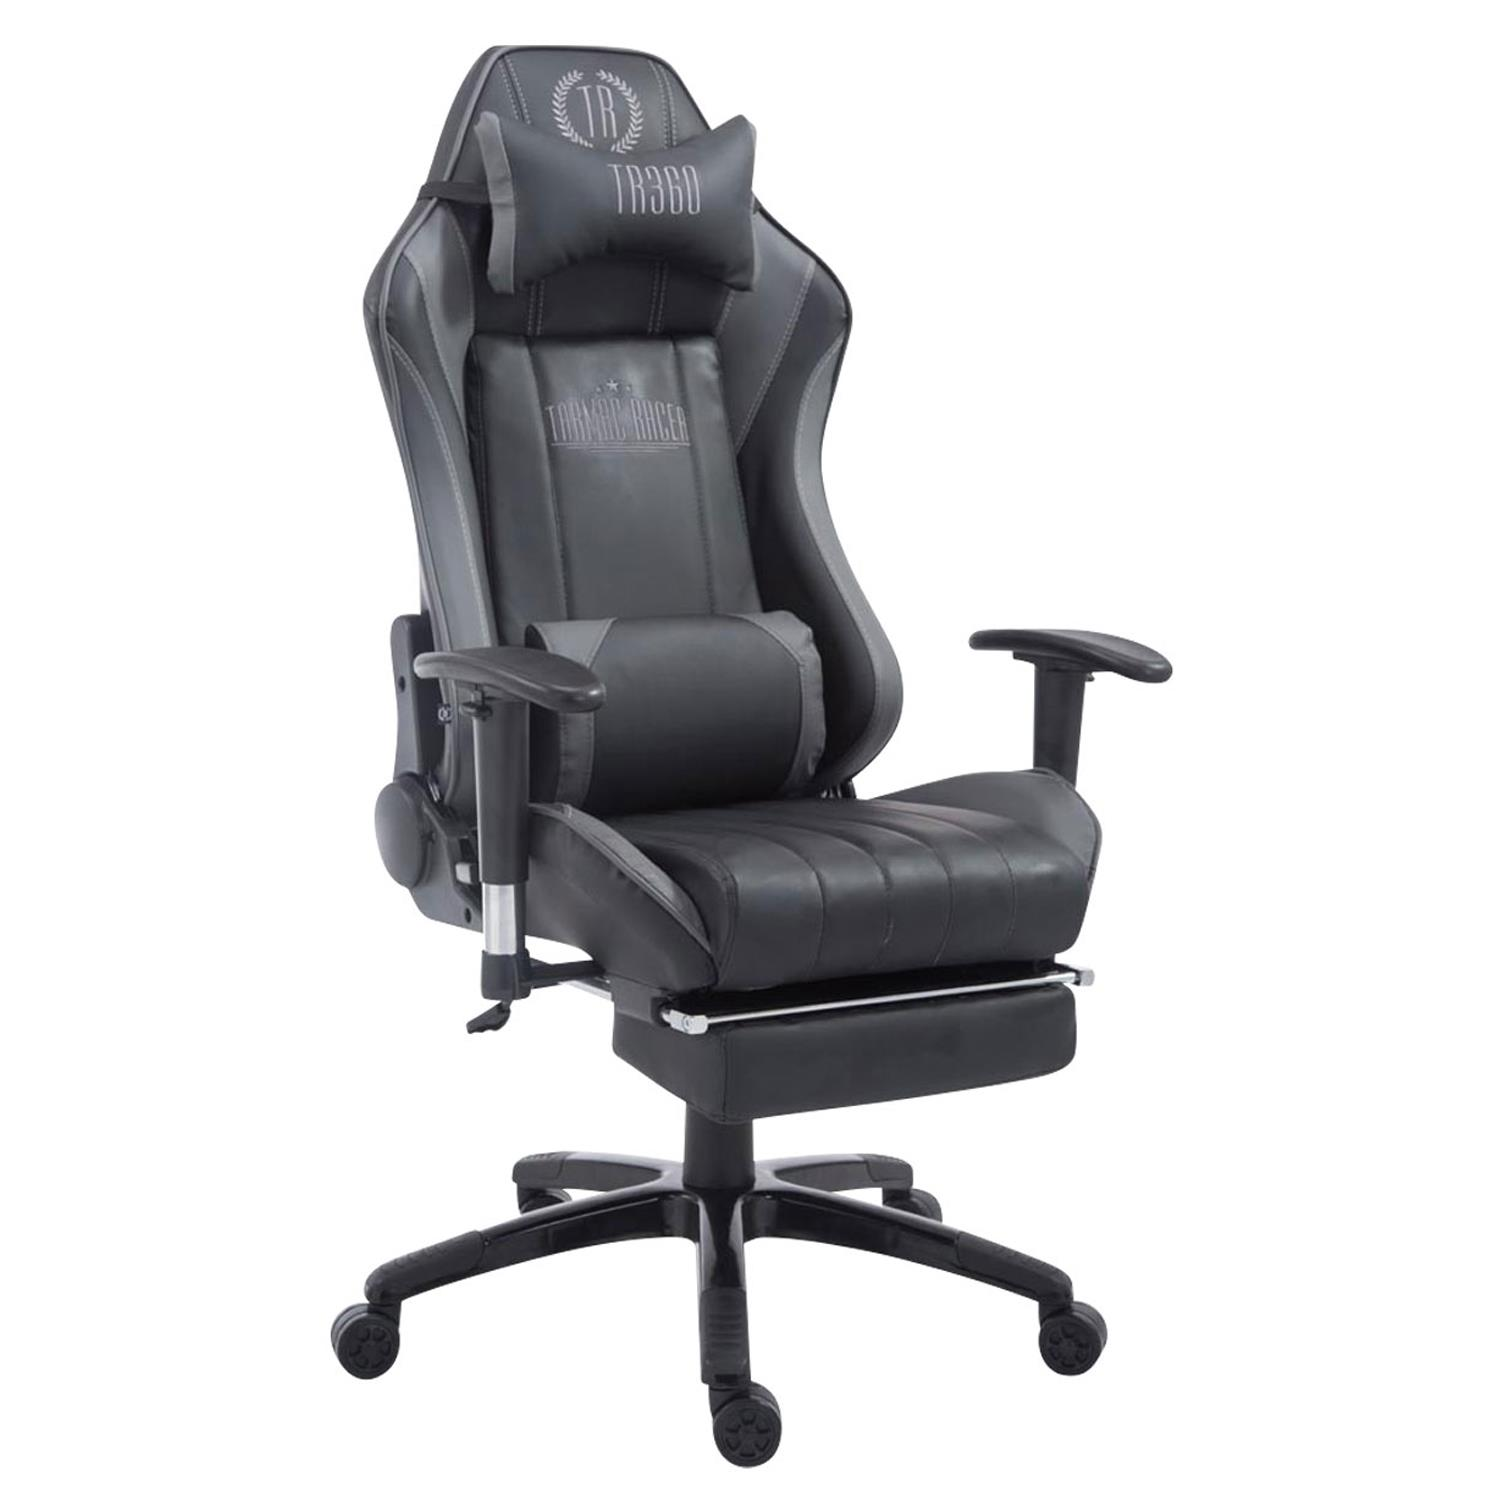 fauteuil gamer turbo avec reposepieds inclinable